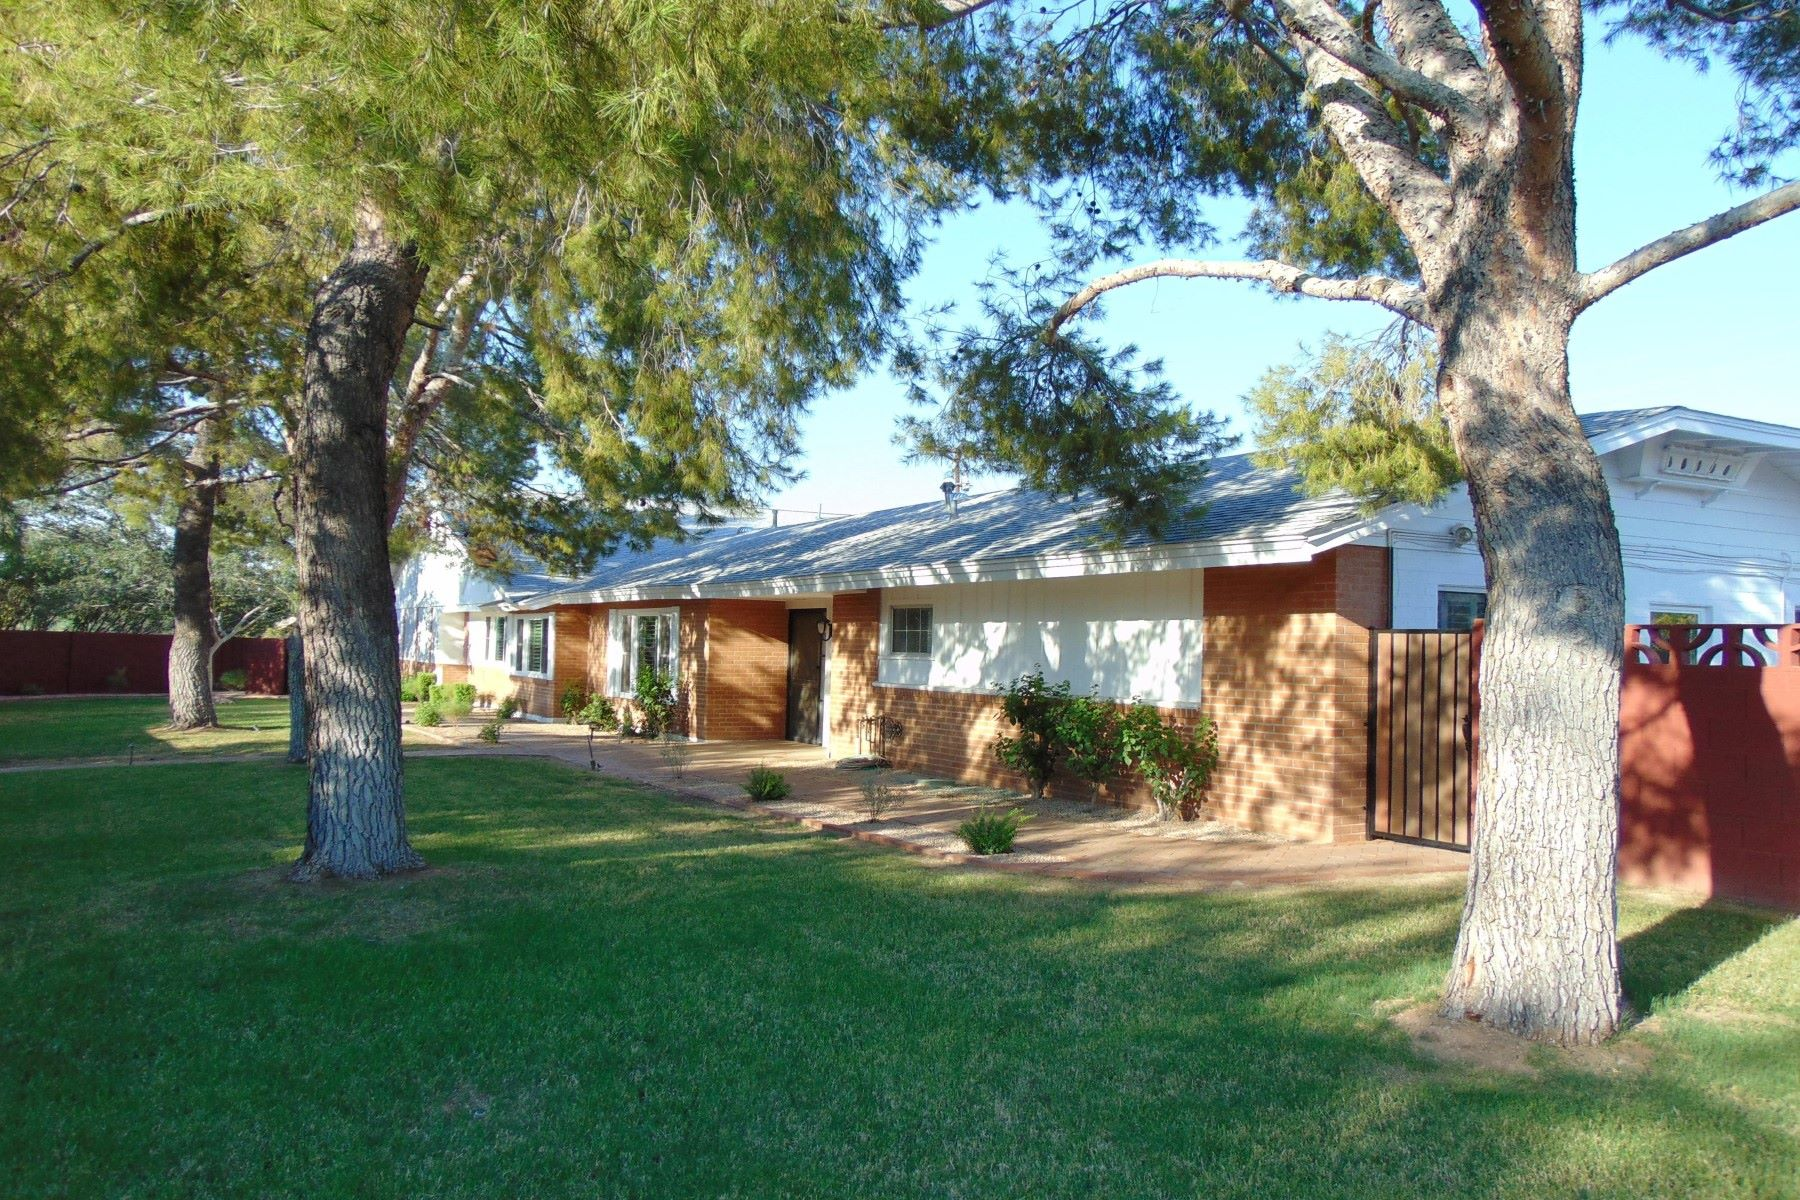 Single Family Home for Sale at Beautifully remodeled home in Park Paradise 4350 E Vermont Ave Phoenix, Arizona, 85018 United States